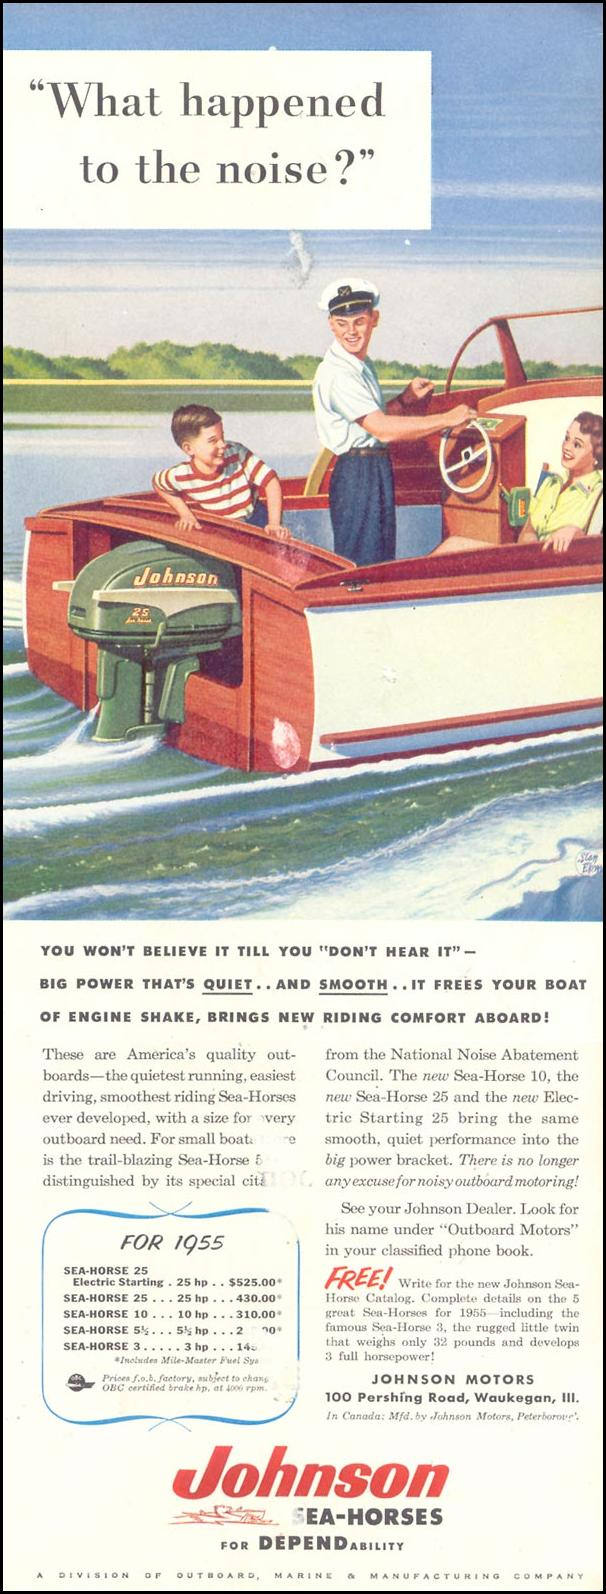 JOHNSON SEA-HORSE OUTBOARD MOTORS SATURDAY EVENING POST 04/09/1955 p. 65